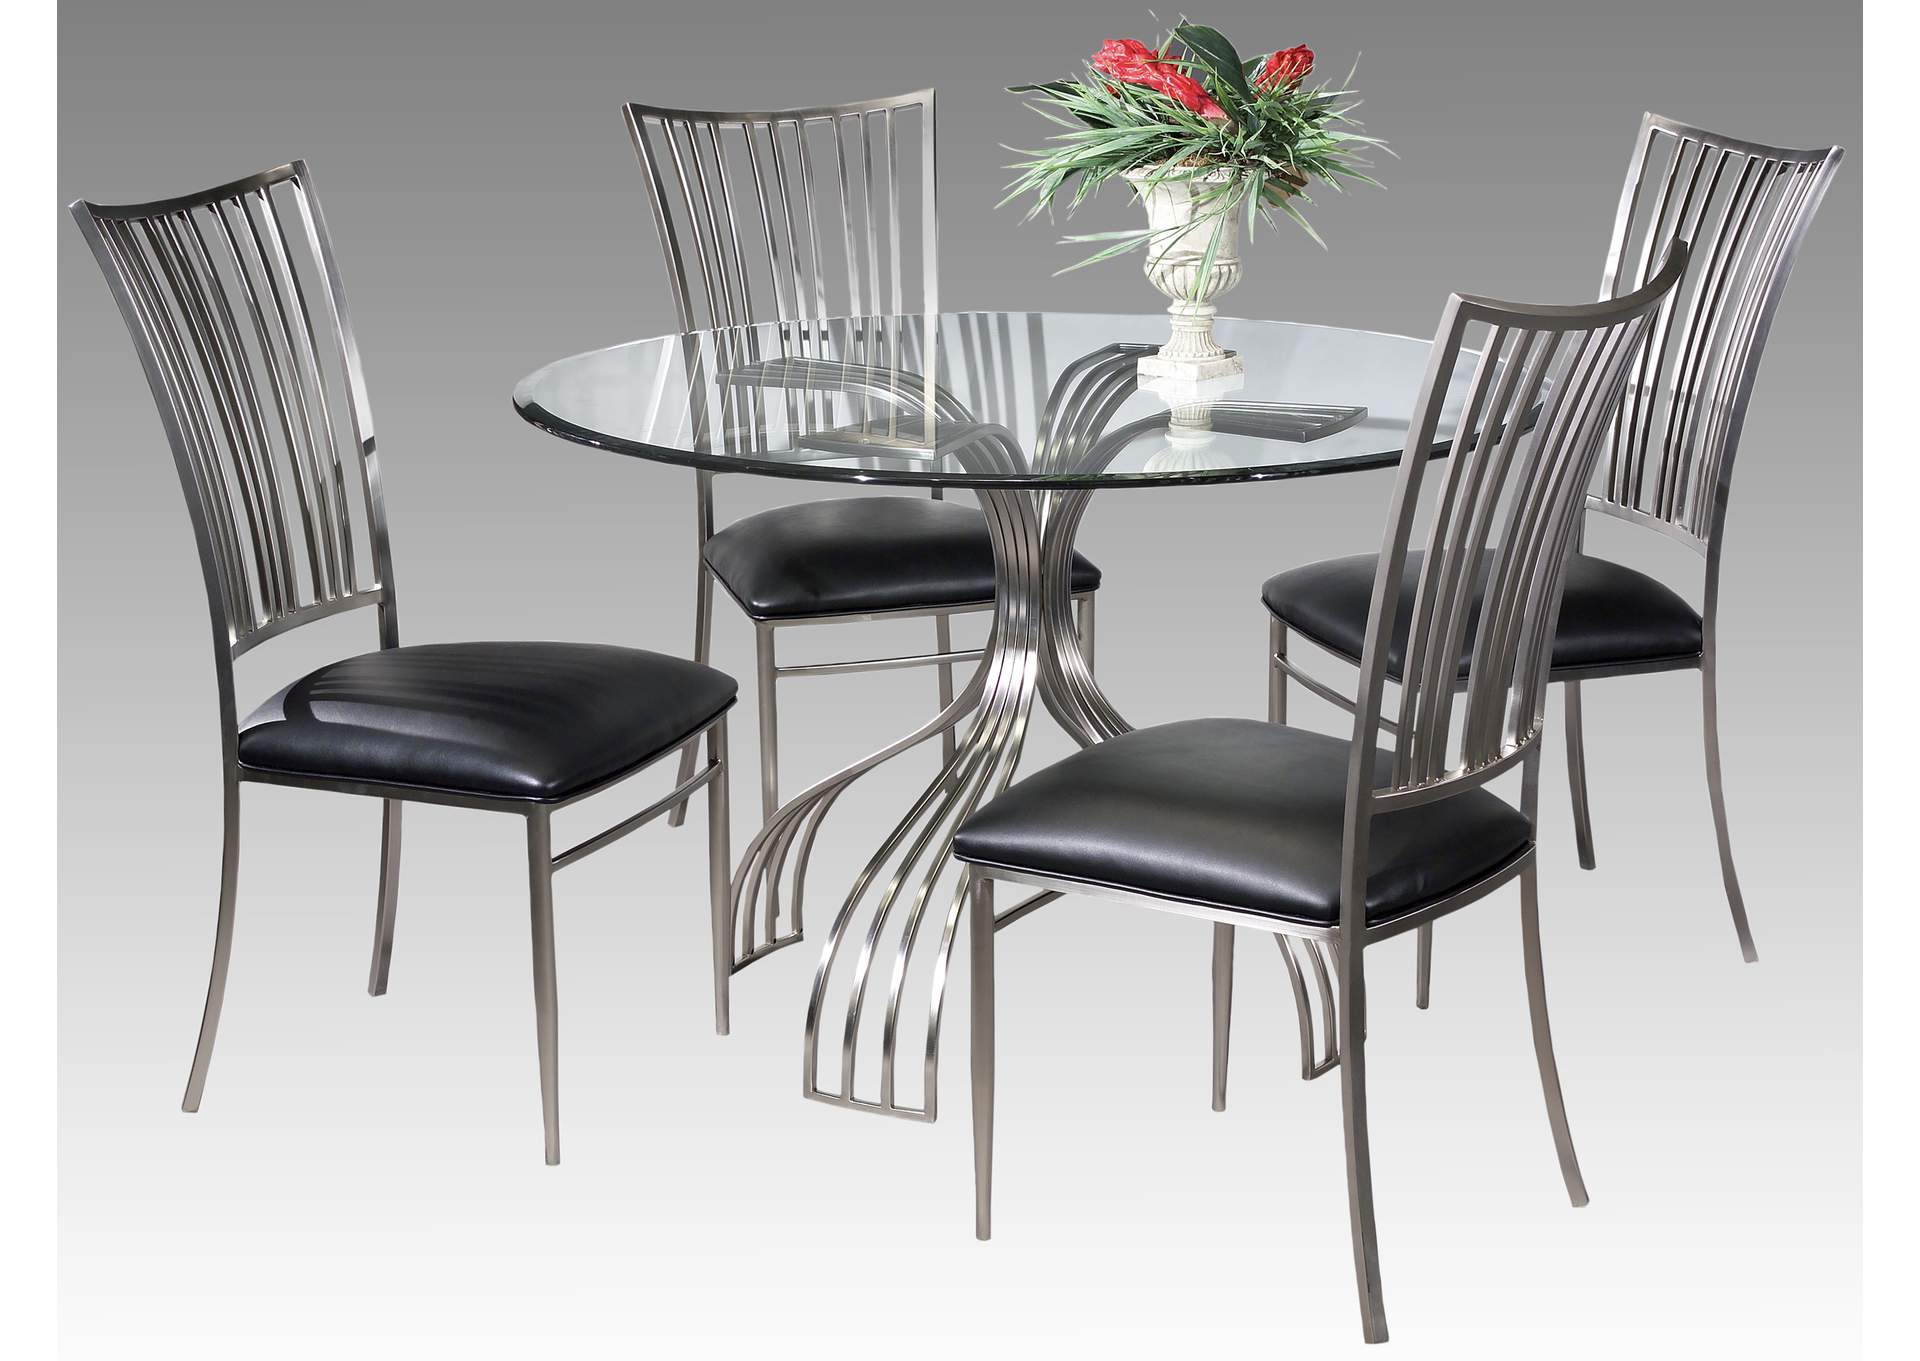 Ashtyn Black & Chrome 5 Piece Dining Room Set,Chintaly Imports